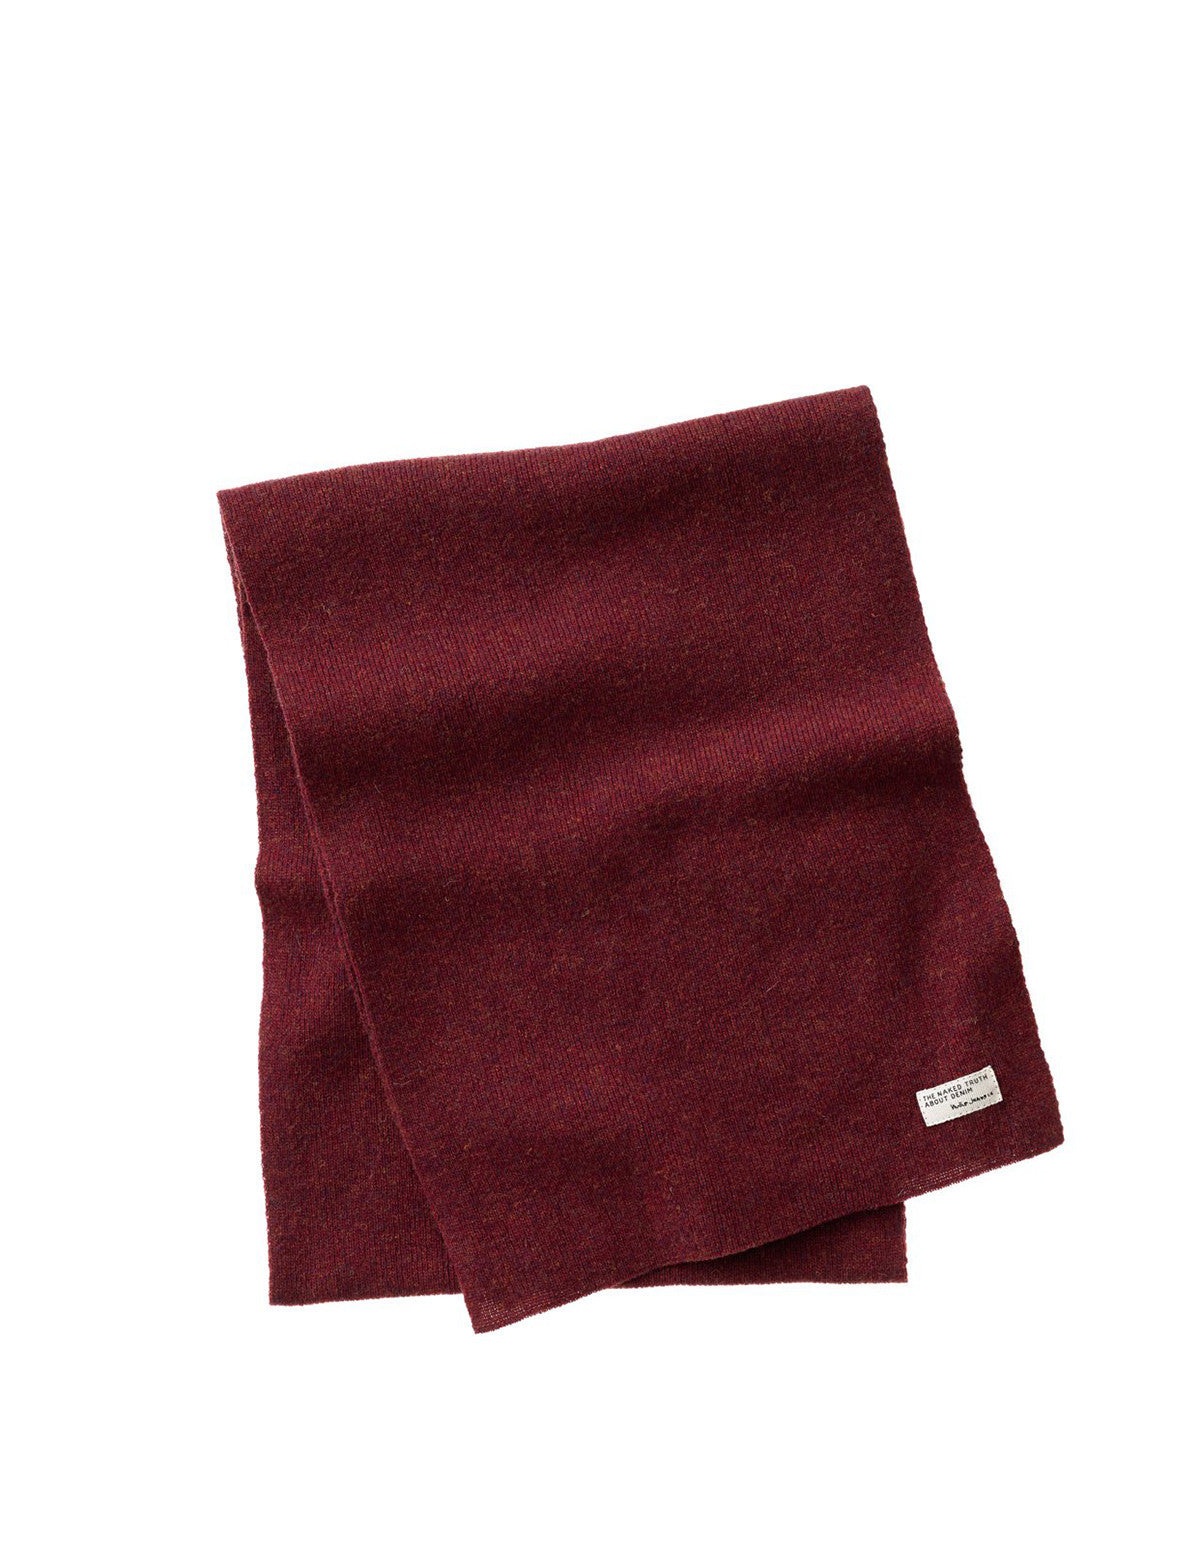 Nudie Liamsson Scarf Burnt Red - Still Life - 1